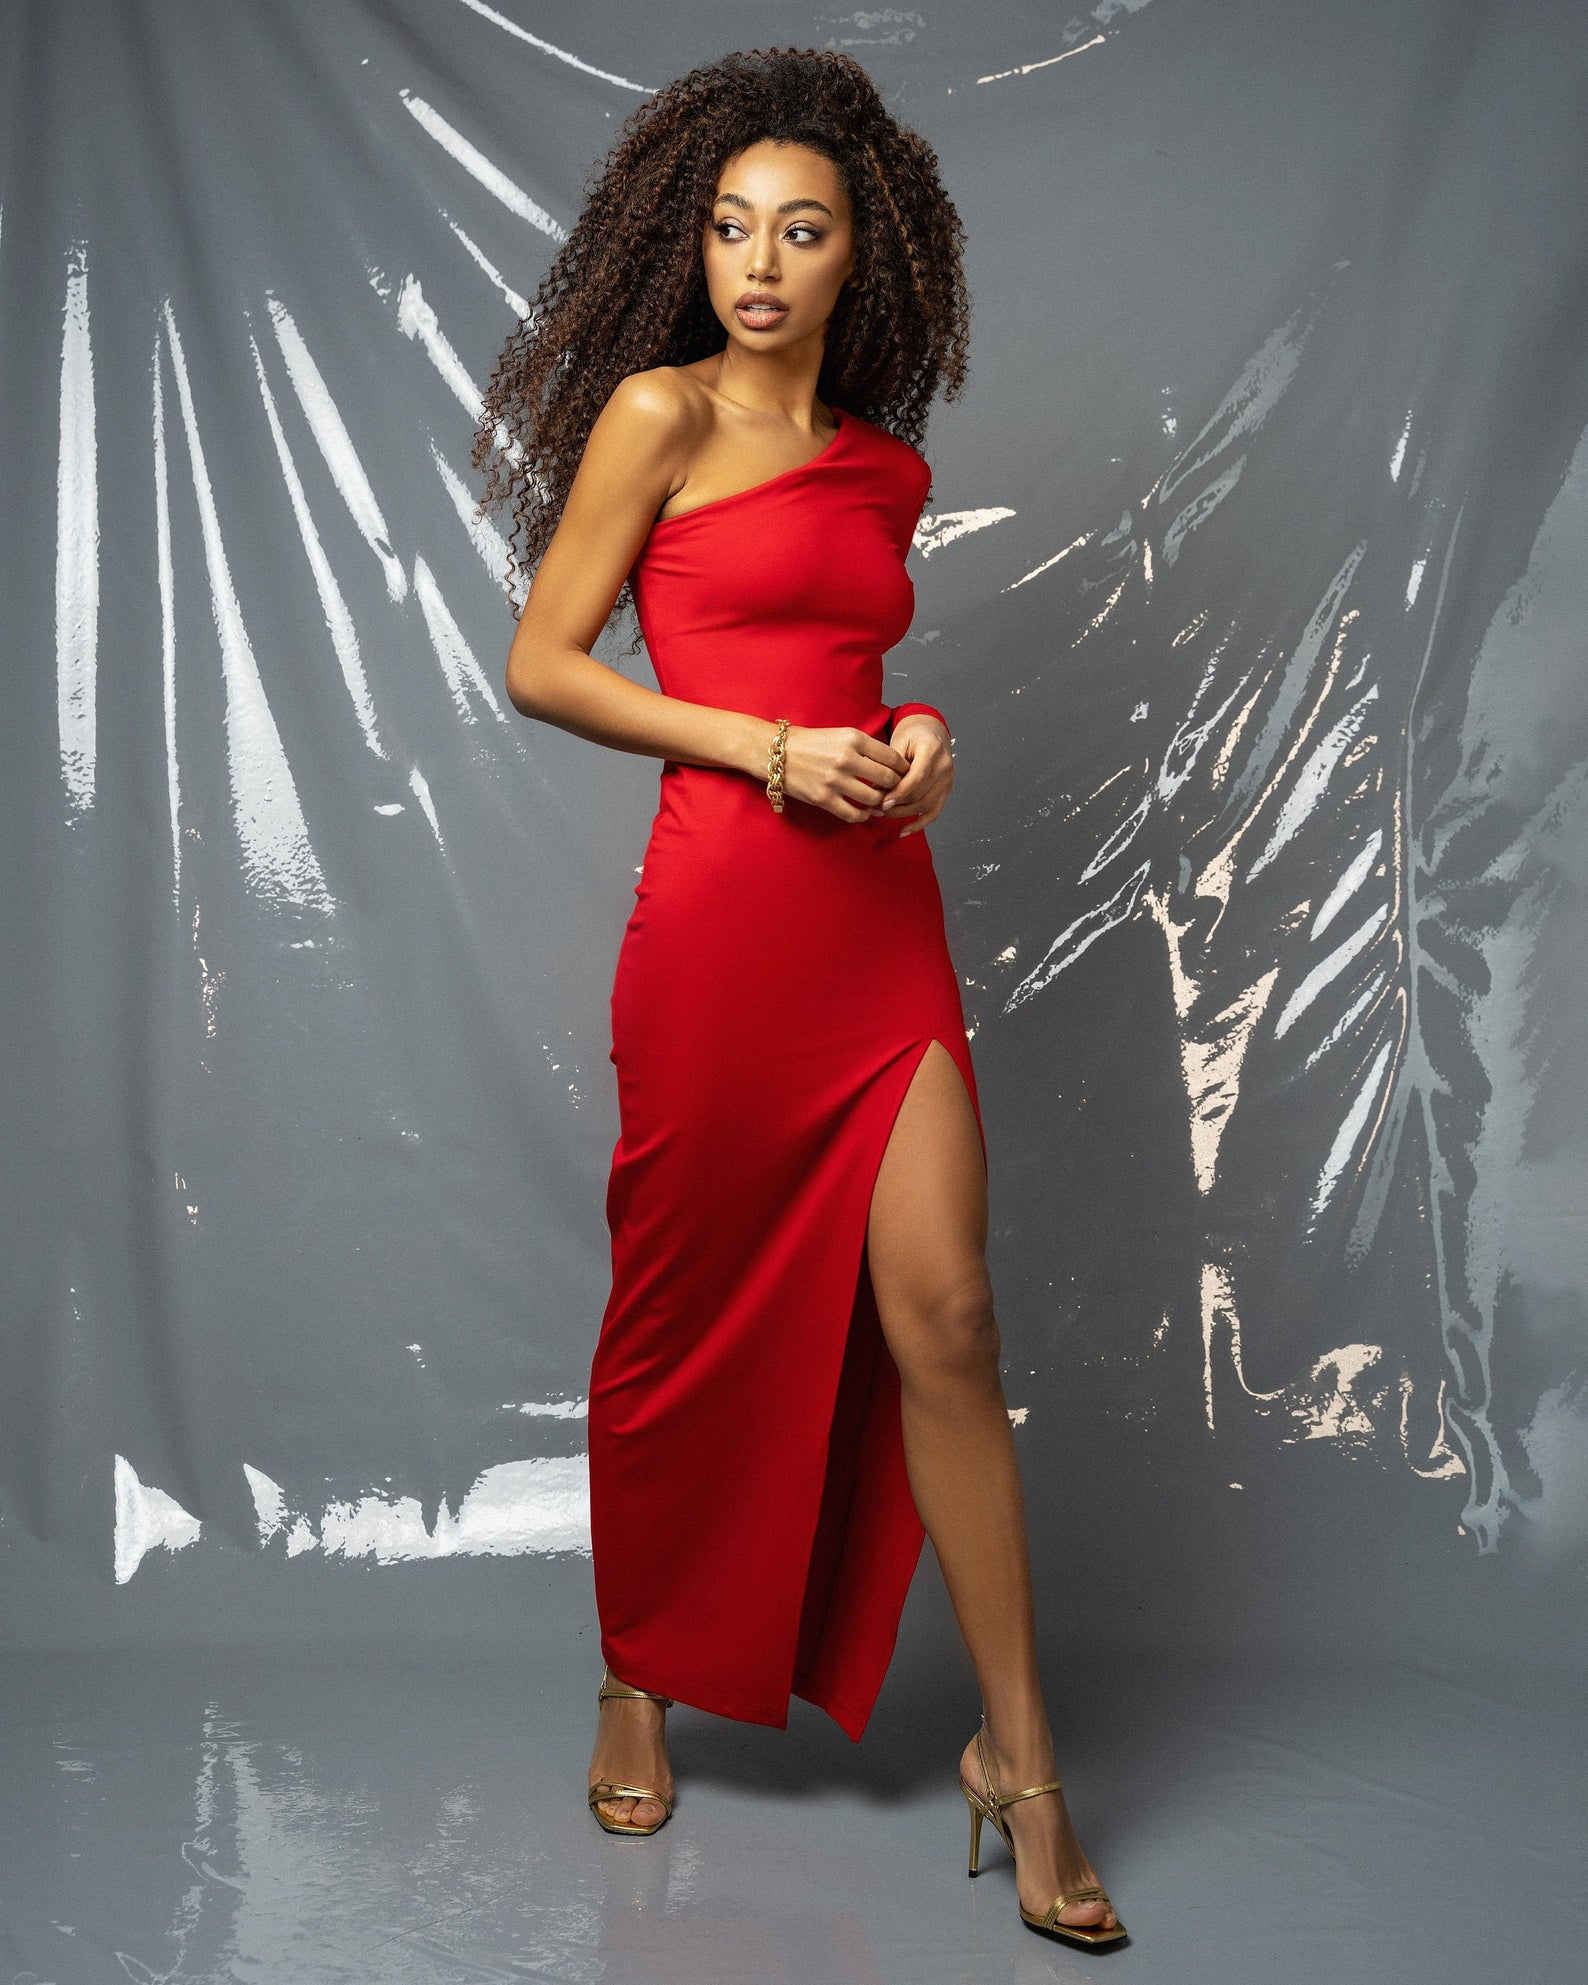 A woman wearing a red one shoulder, thigh-high slit dress.